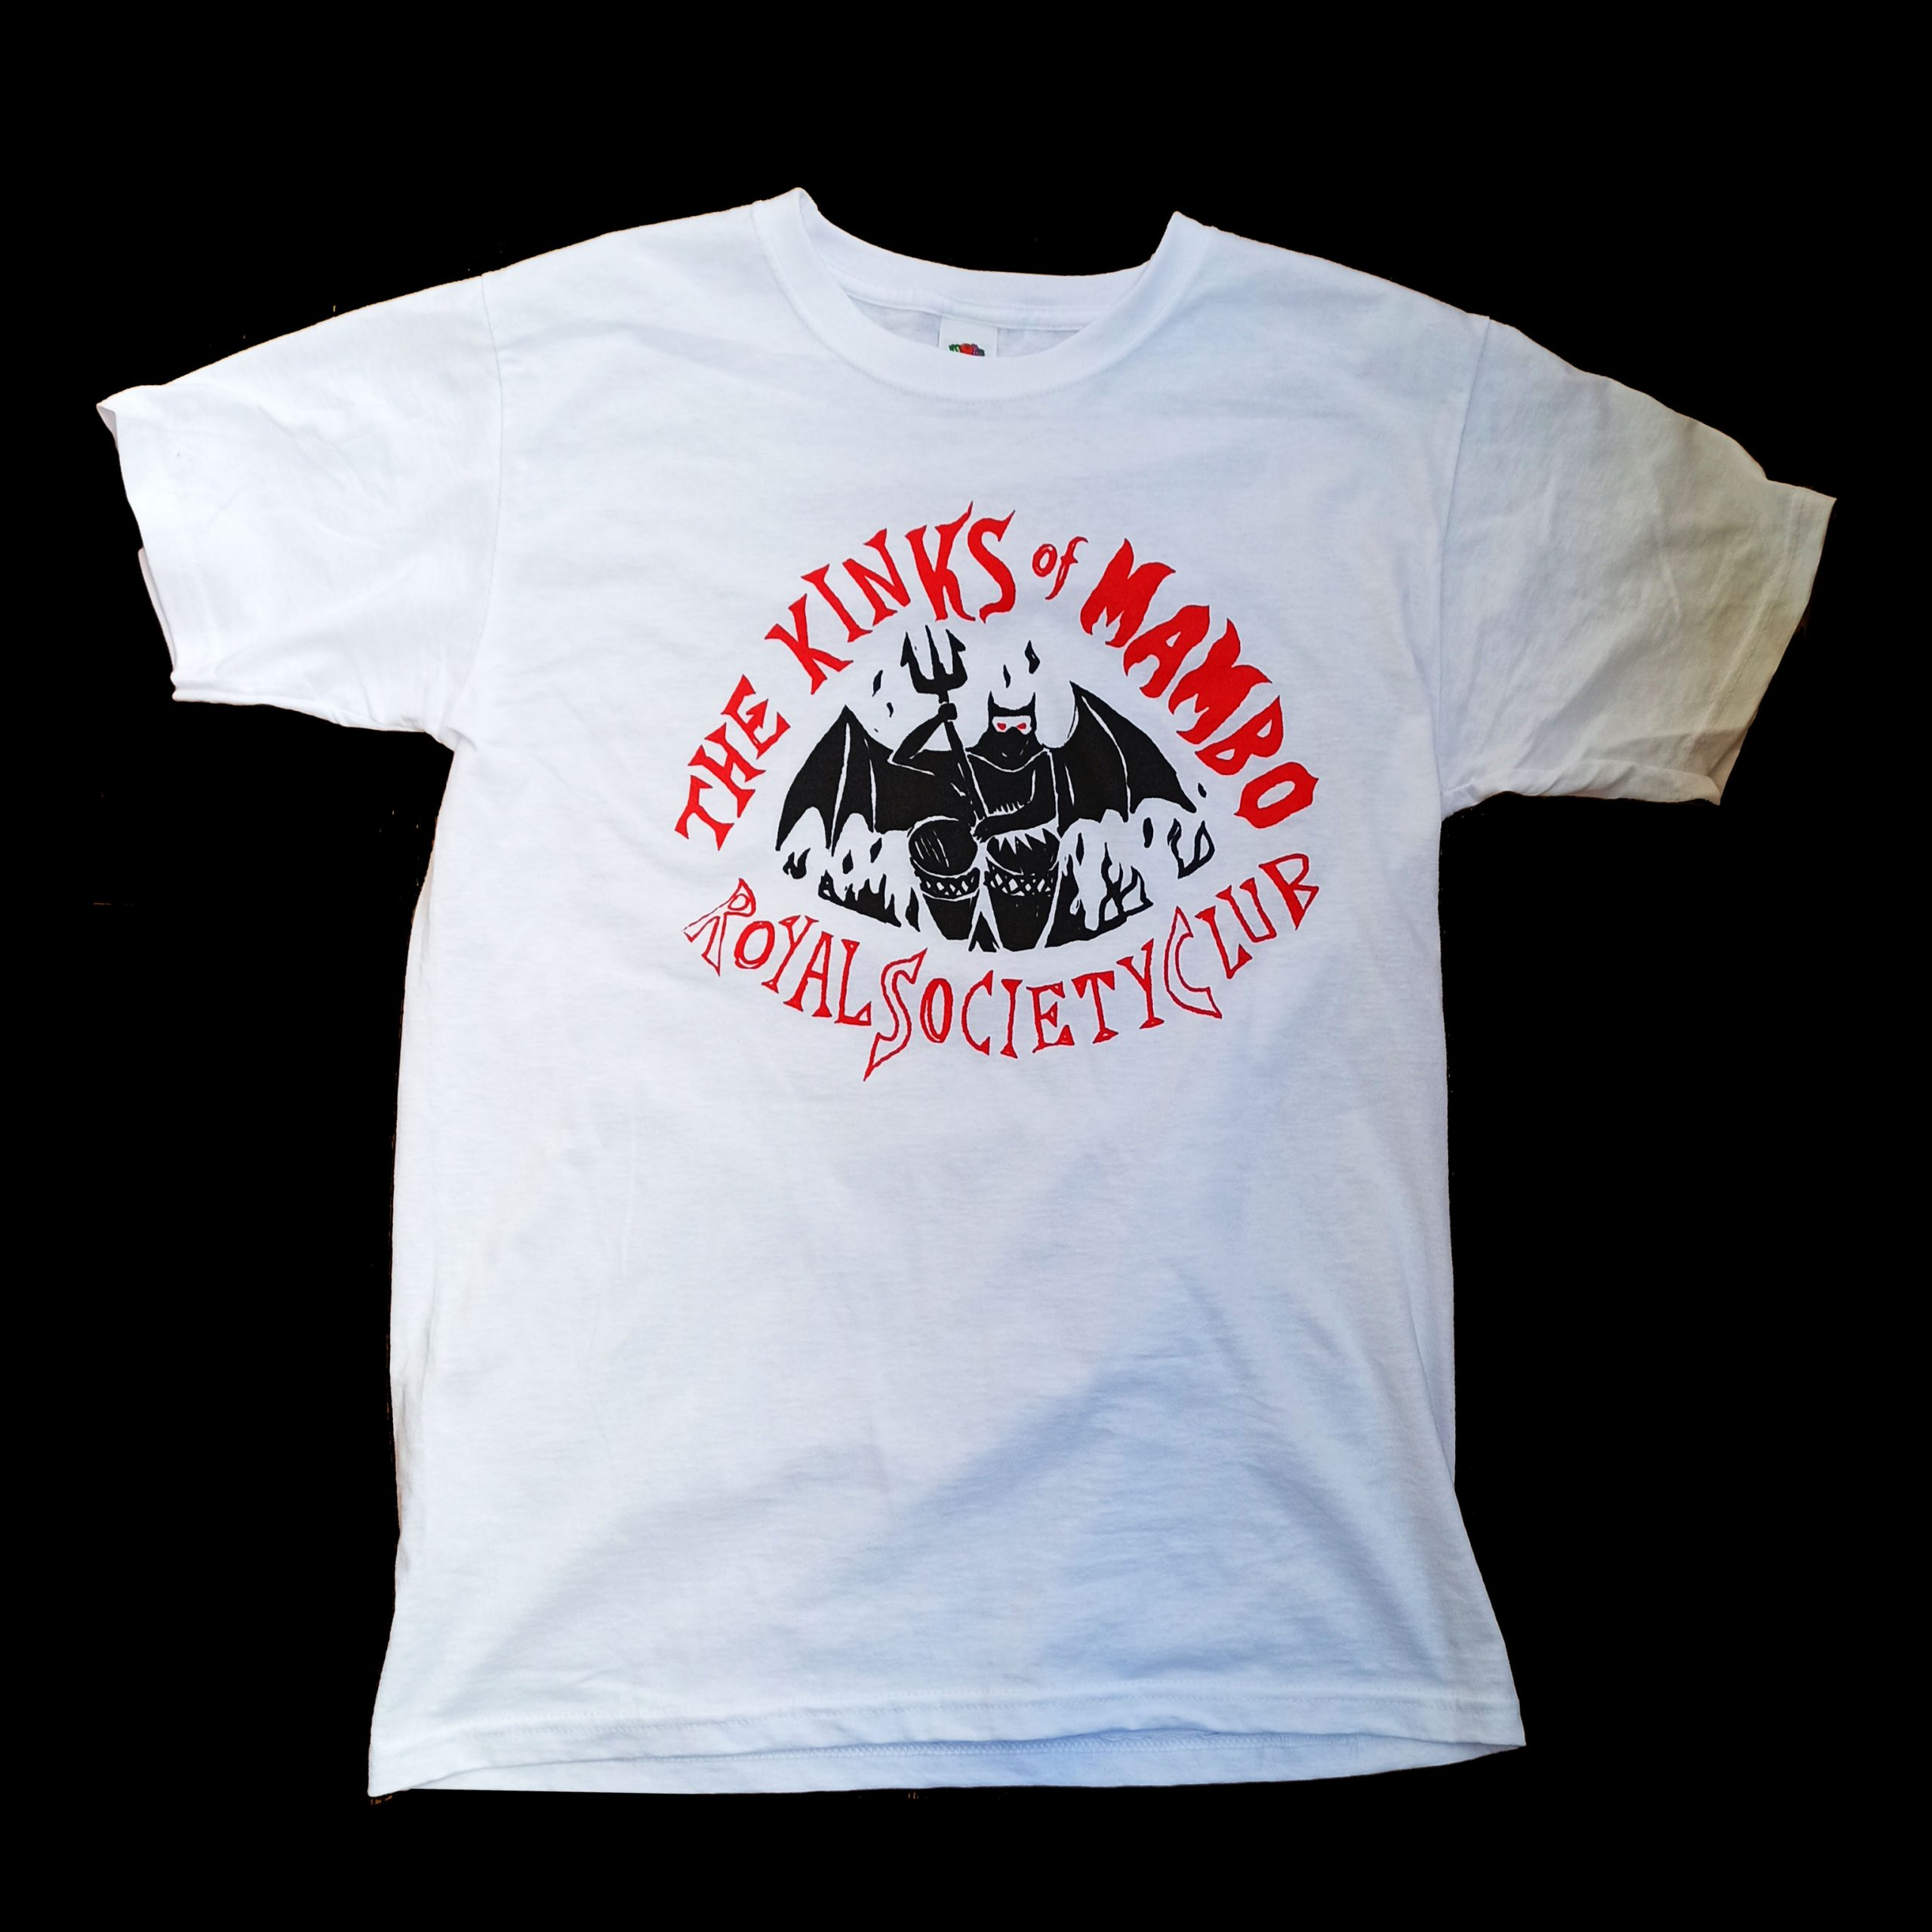 The Kinks of Mambo Royal Society Club T-Shirt (White)